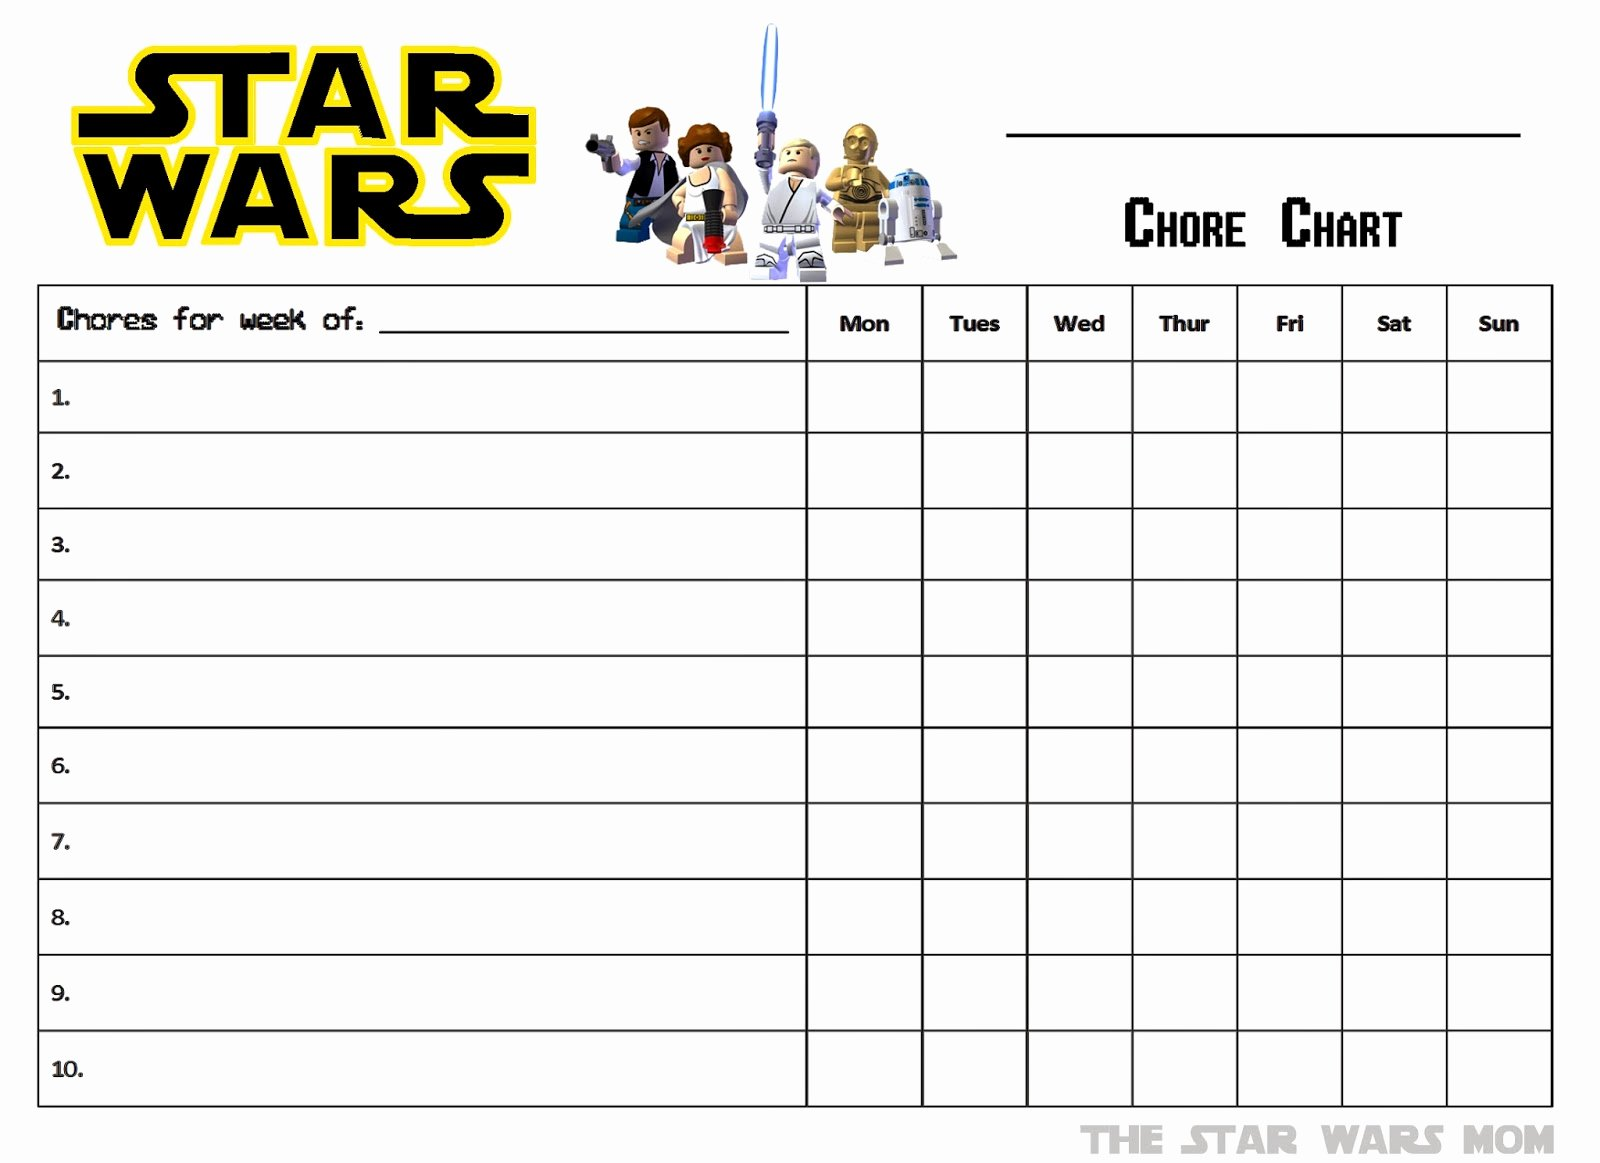 Lego Star Wars Free Printable Chores Chart the Star